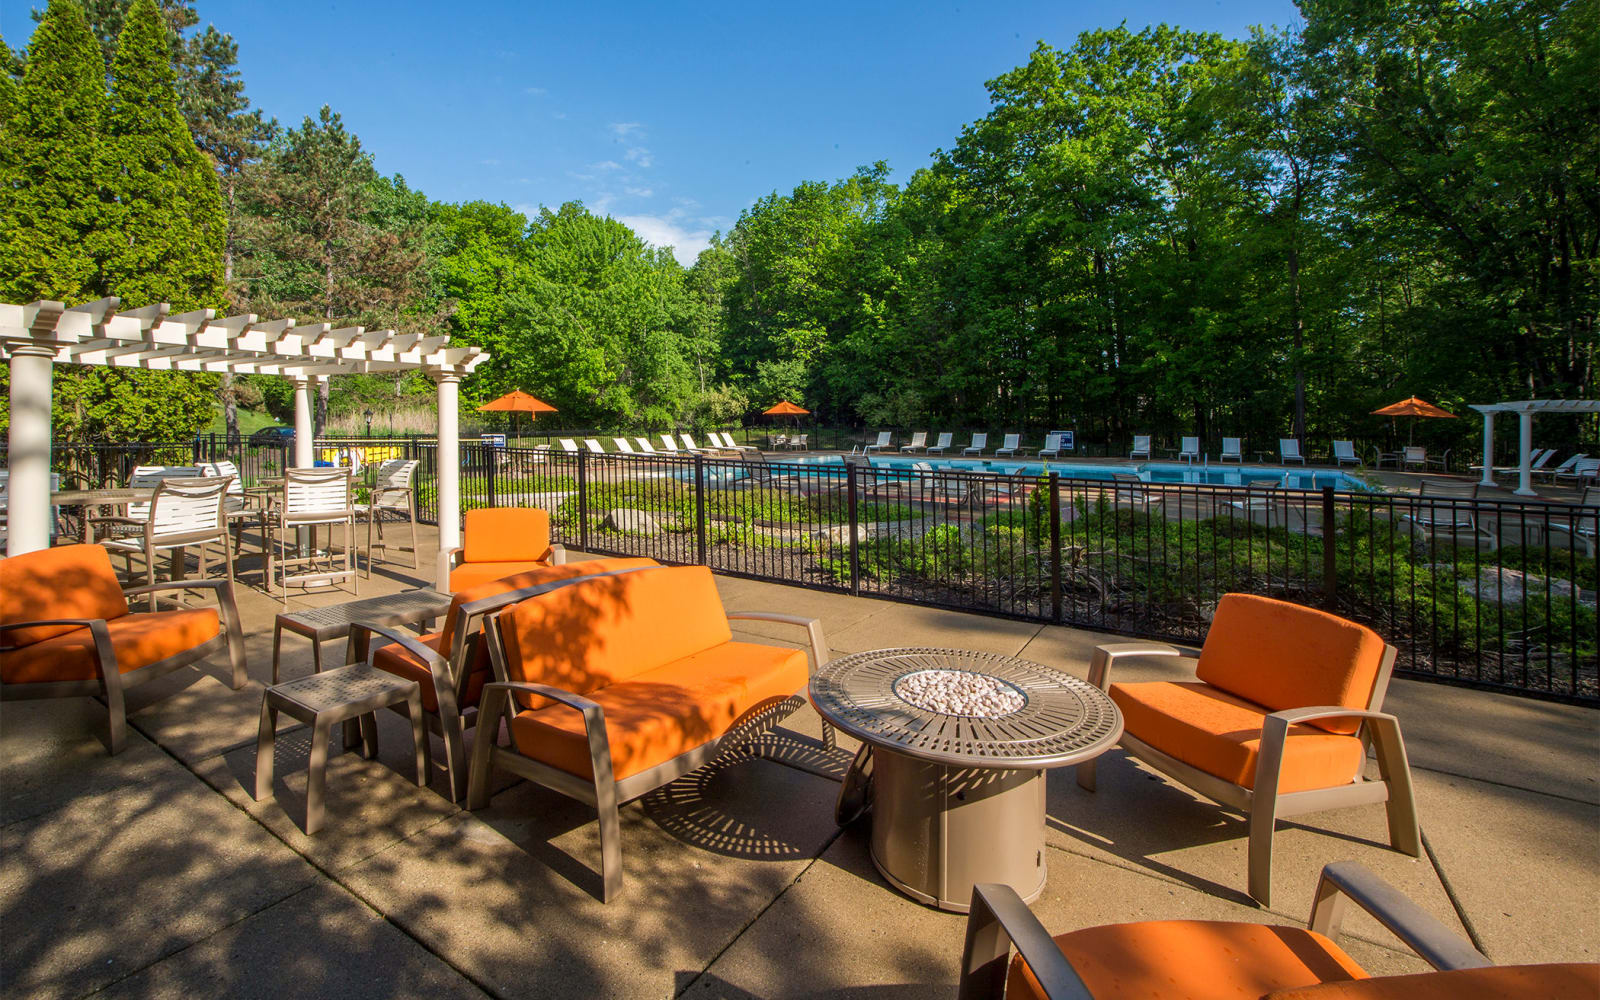 Pool area with chairs and tables at Aldingbrooke in West Bloomfield, Michigan